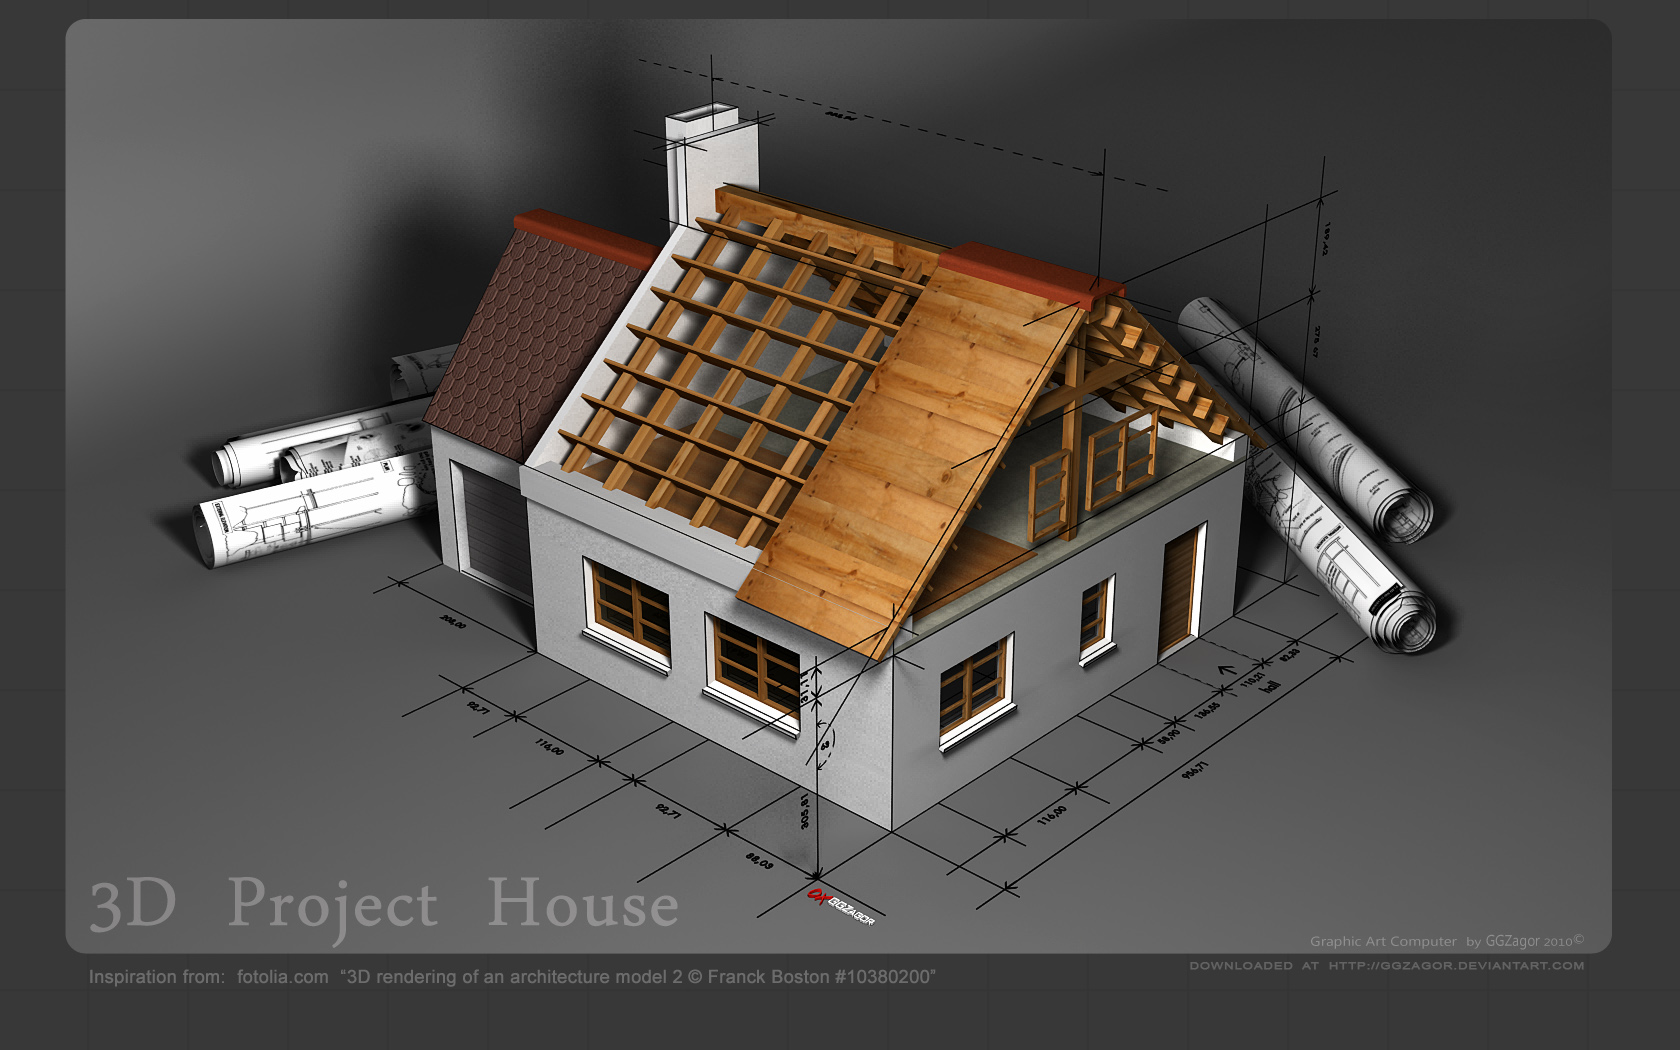 3d project house 01 by ggzagor on deviantart for Project house